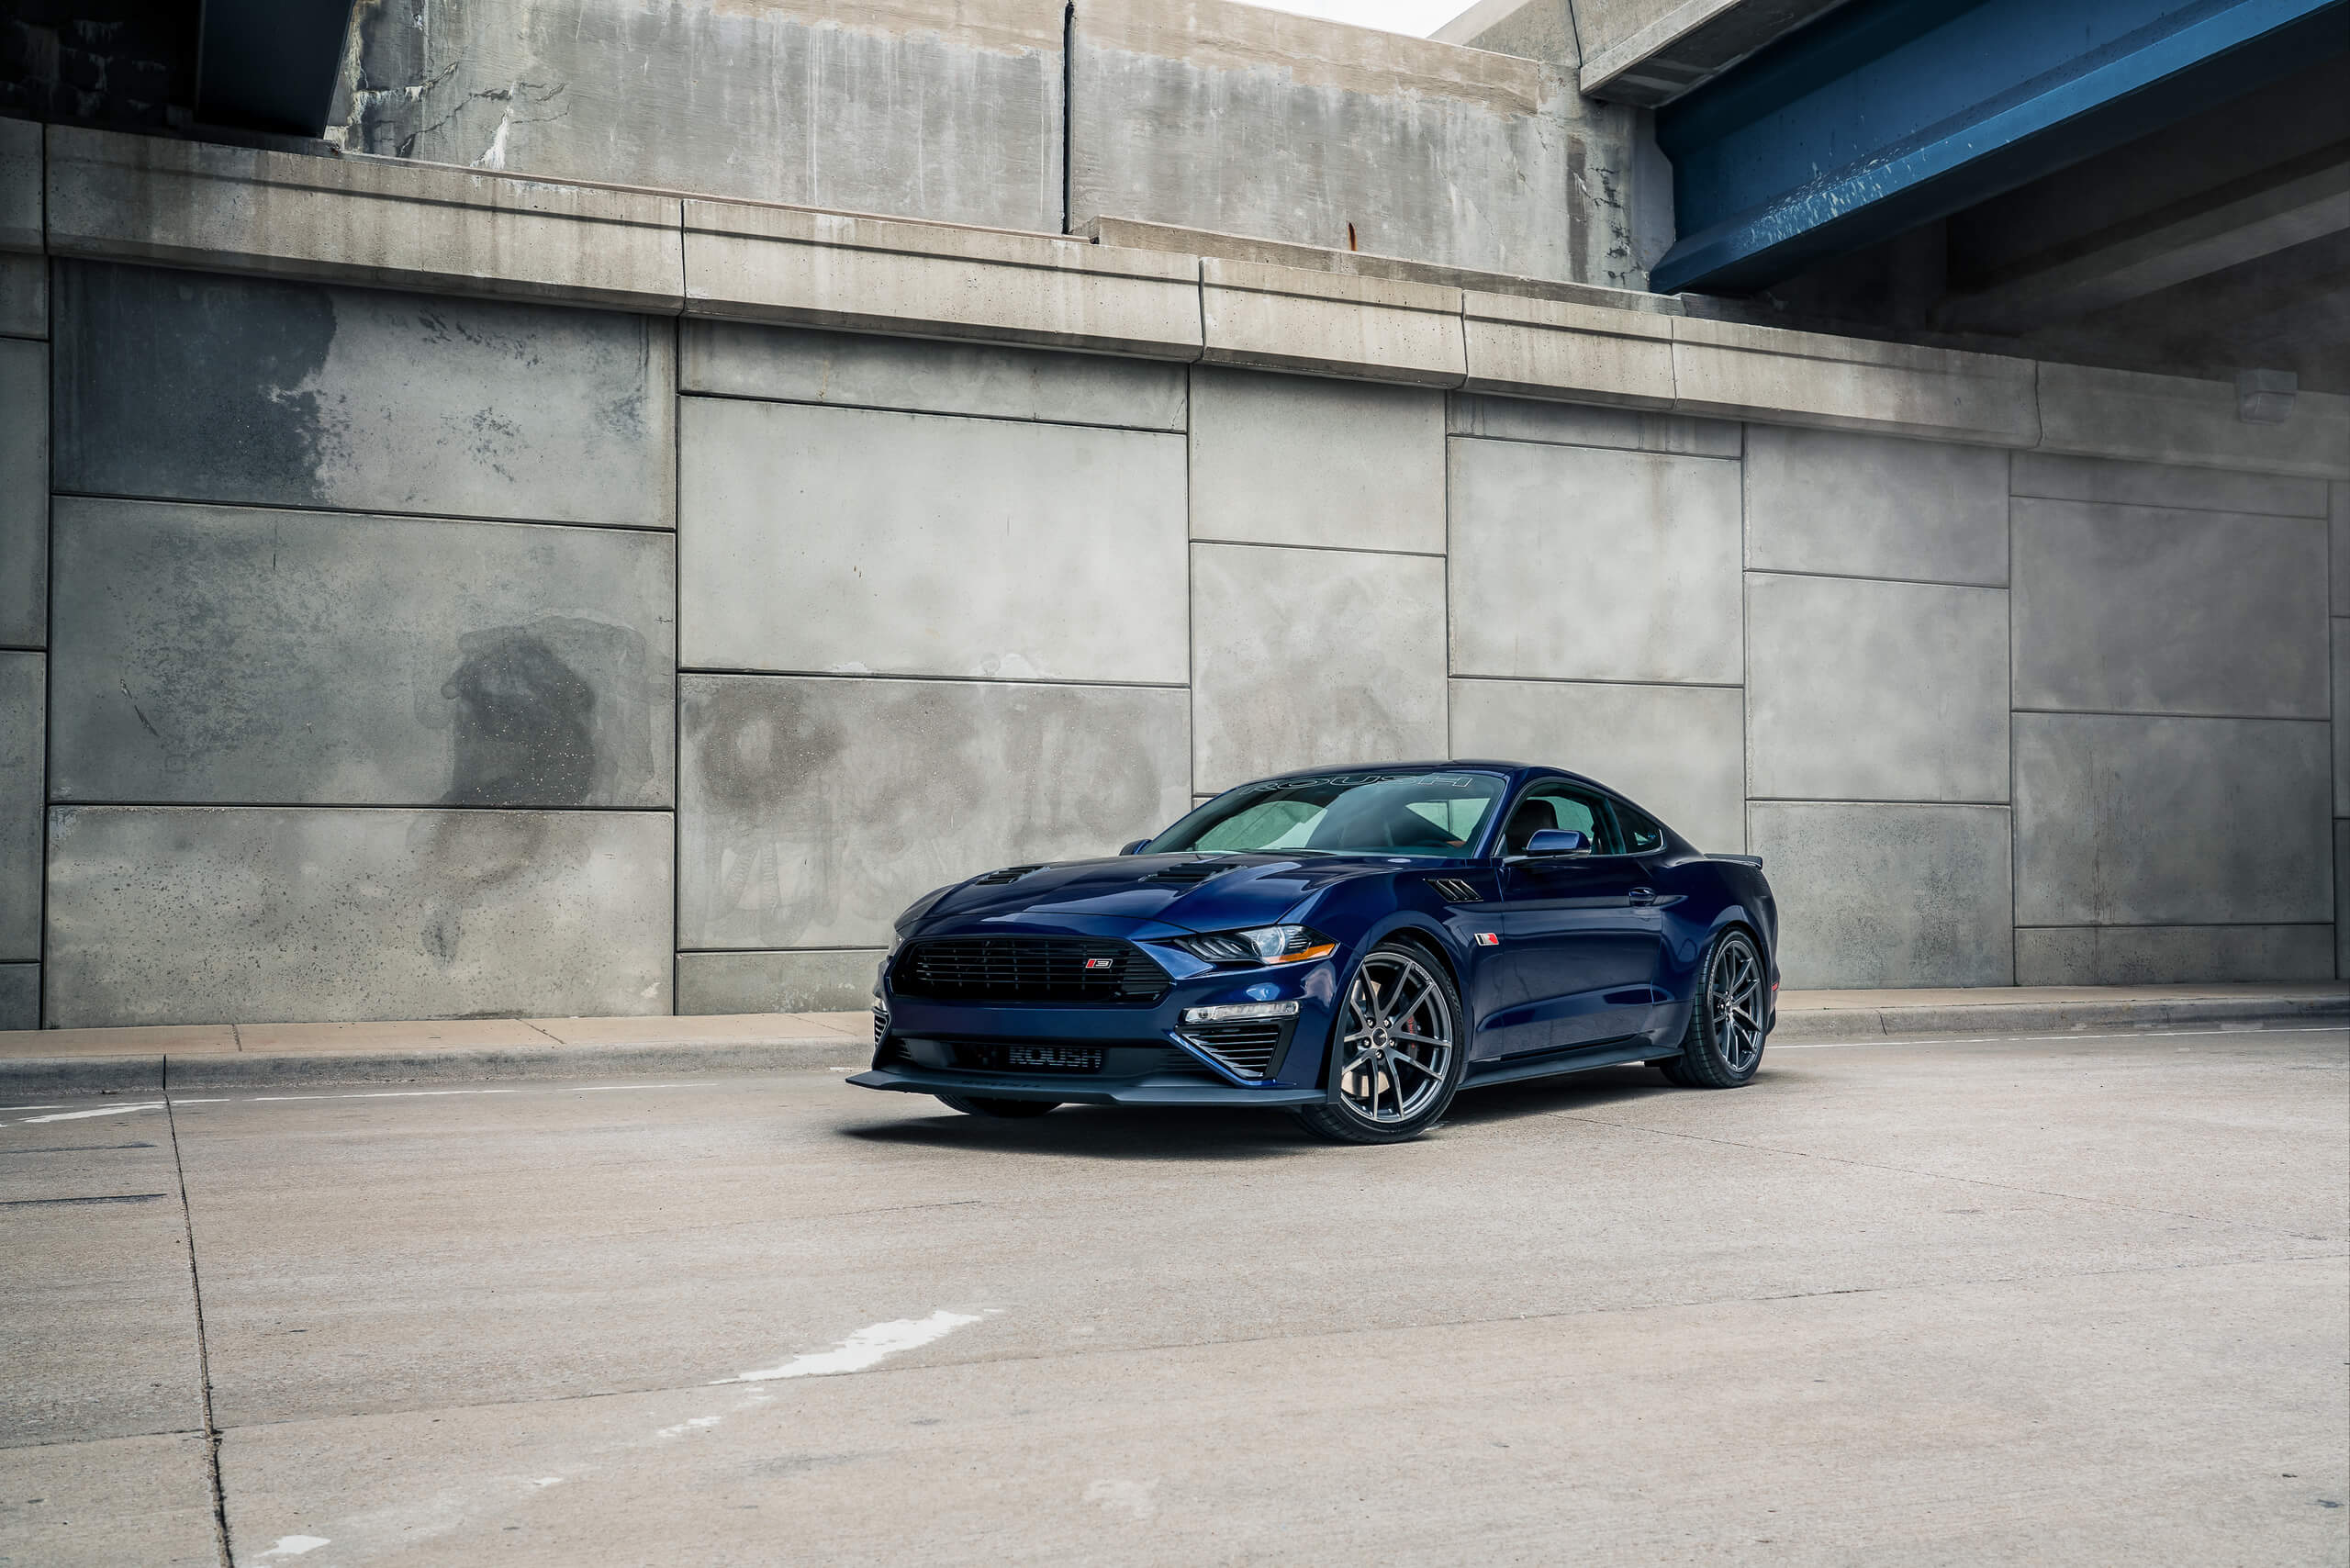 2021 ROUSH Stage 3 - Engineered for Performance